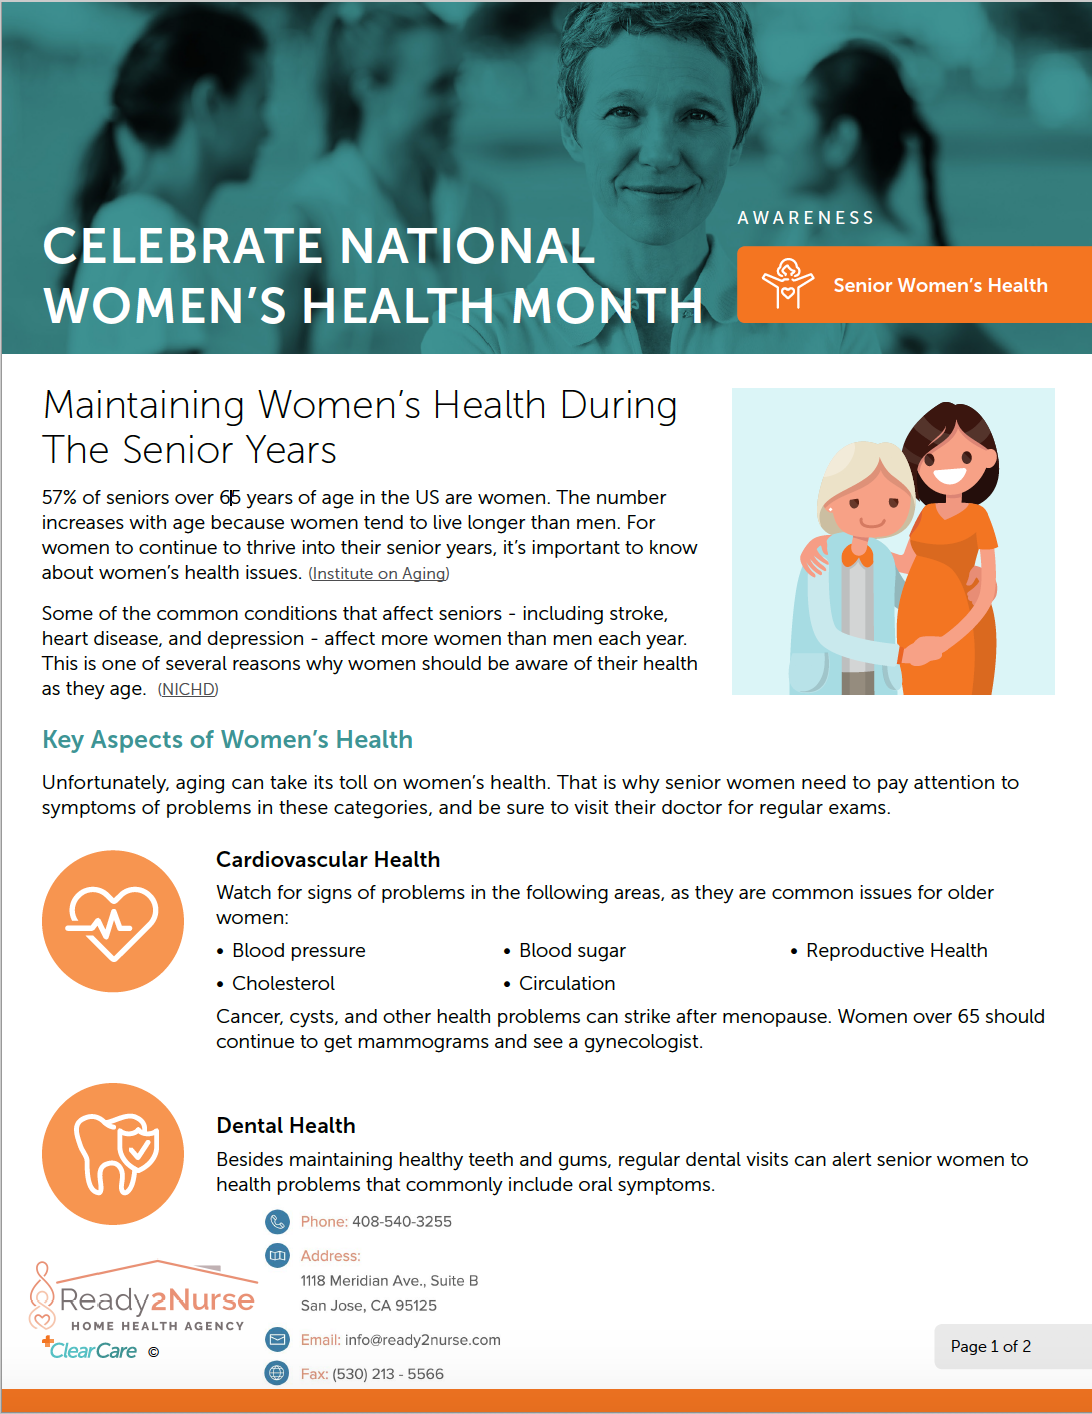 Maintaining Women's Health During the Senior Years